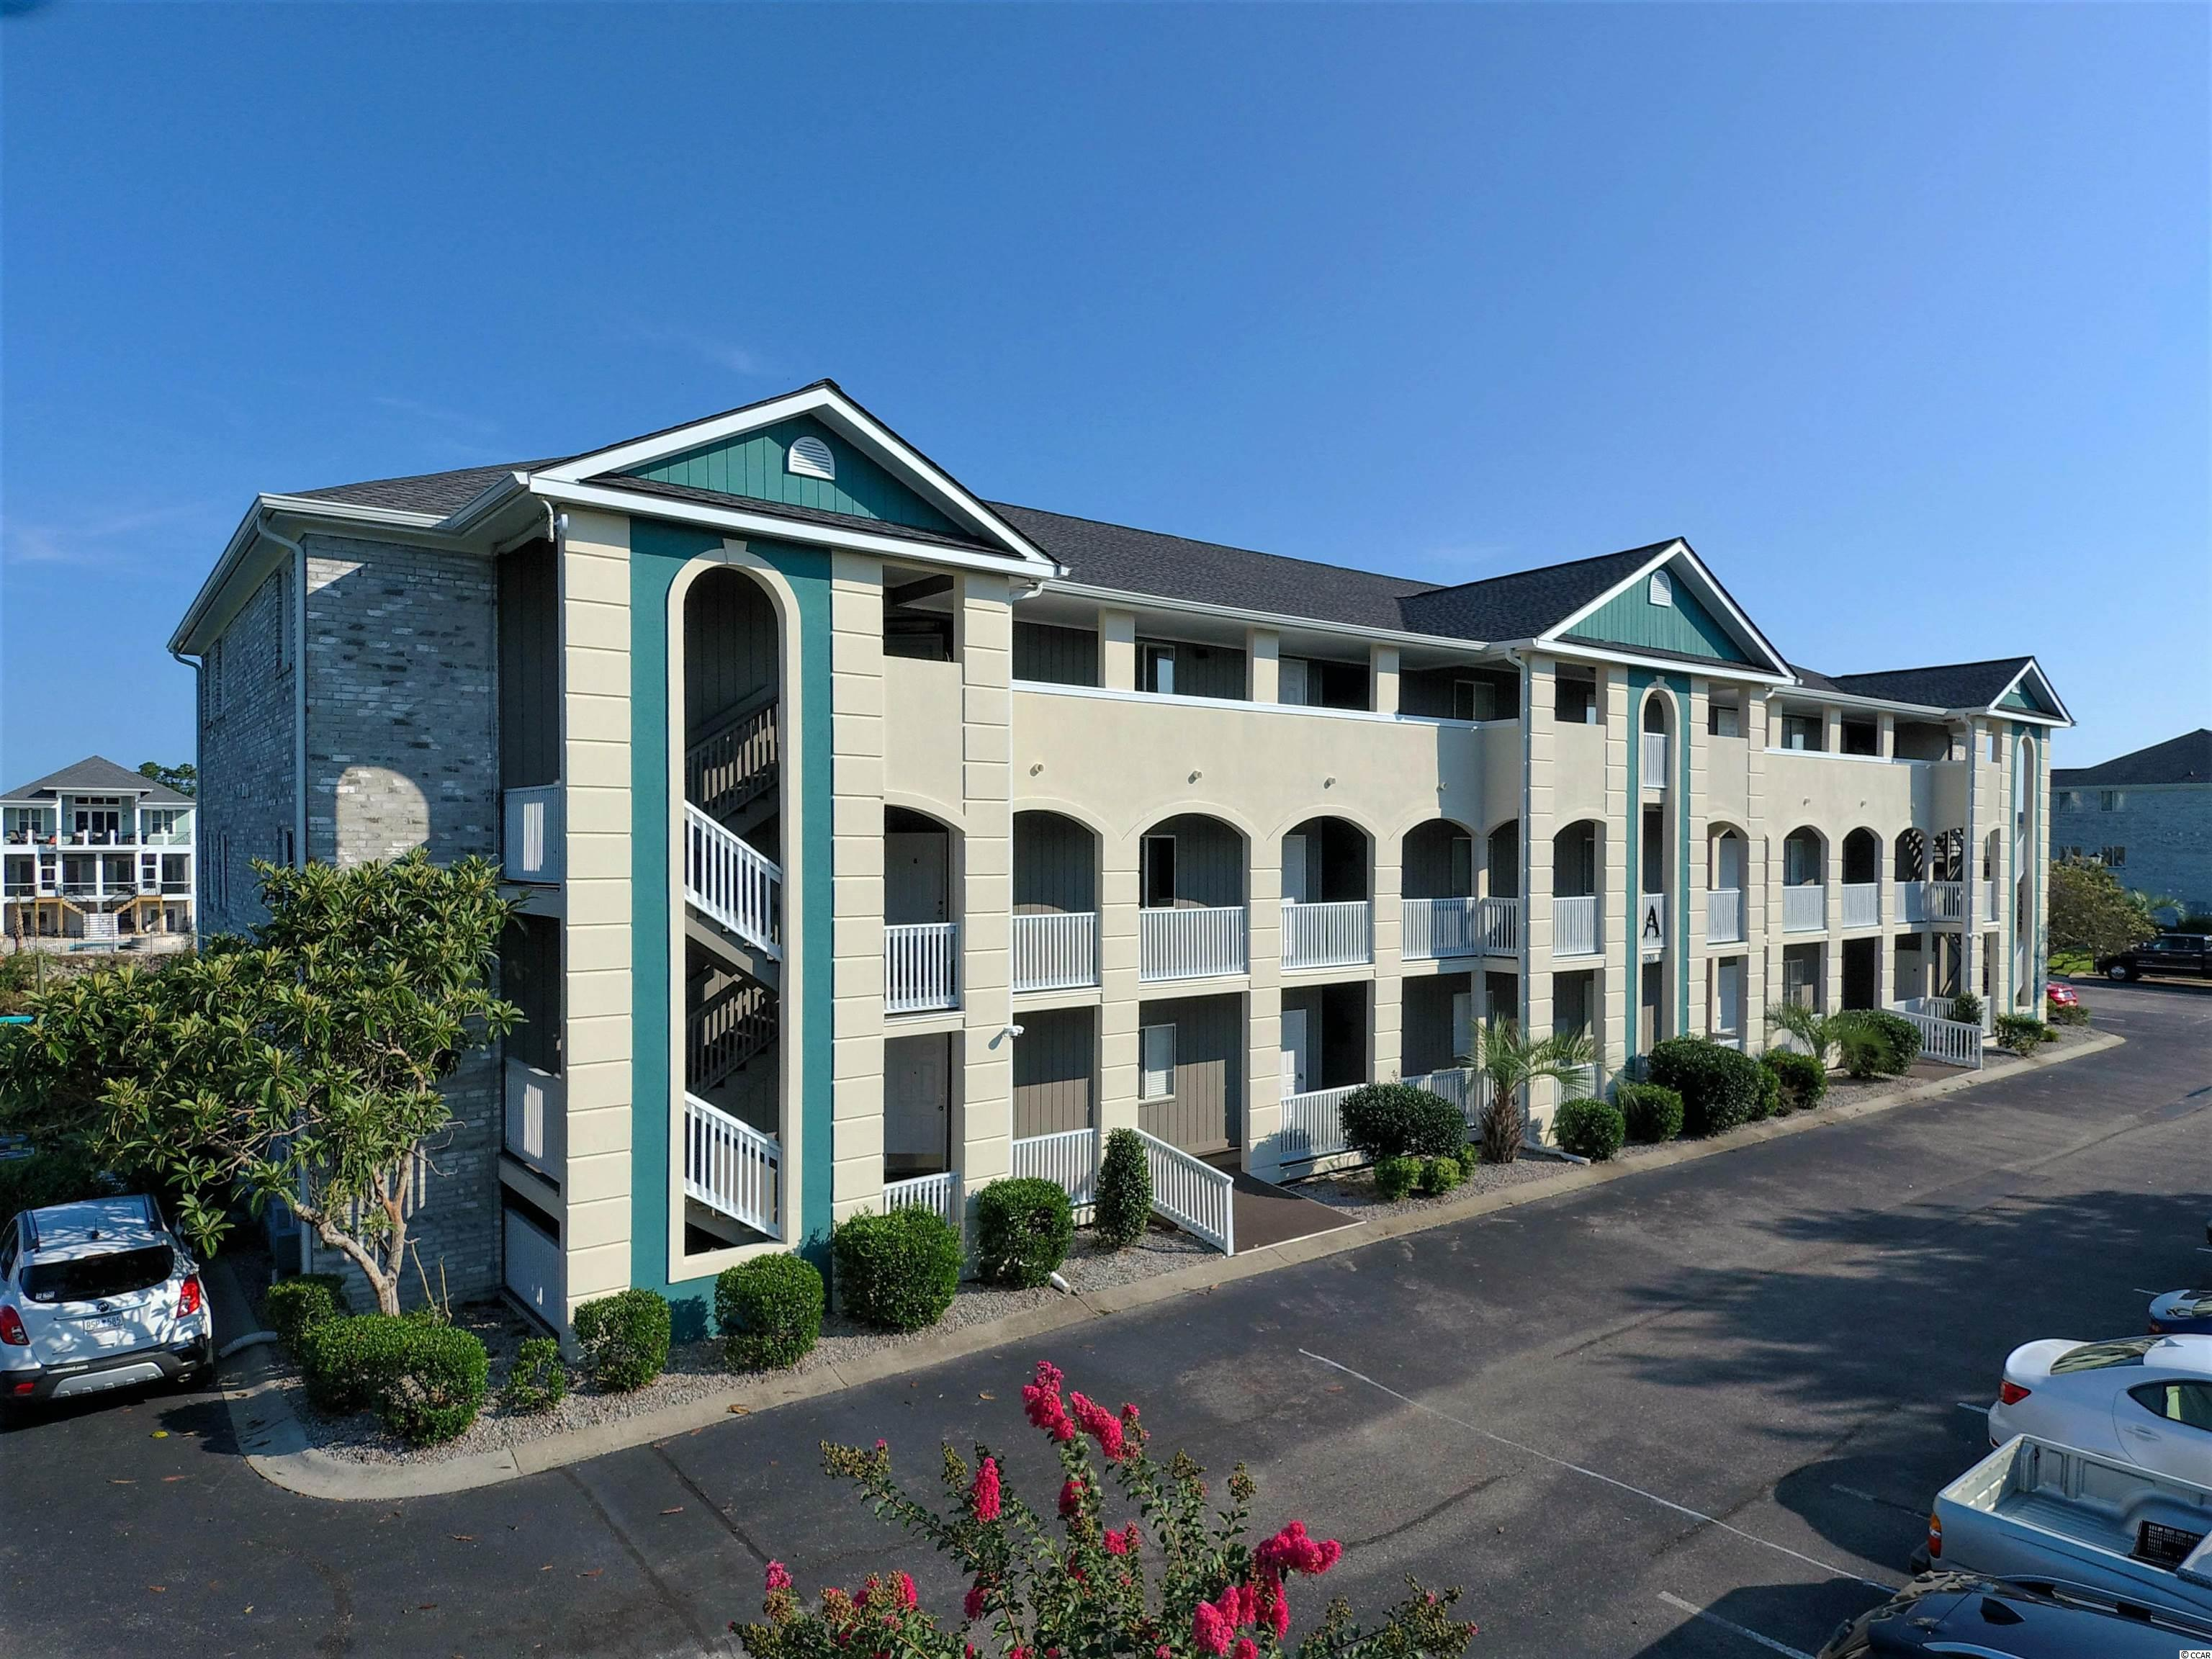 Great opportunity to buy a nice first floor condo that overlooks the intracoastal waterway for rental income. Owners are selling this condo with a tenant in place through the end of the year. Unit is 2 bedroom/2 full baths. It has a spacious screened in porch with direct view of the water. Great amenities including a fitness center and a pool. This is truly an awesome opportunity to own or have rental property in a beautiful gated condominium community on the waterway.